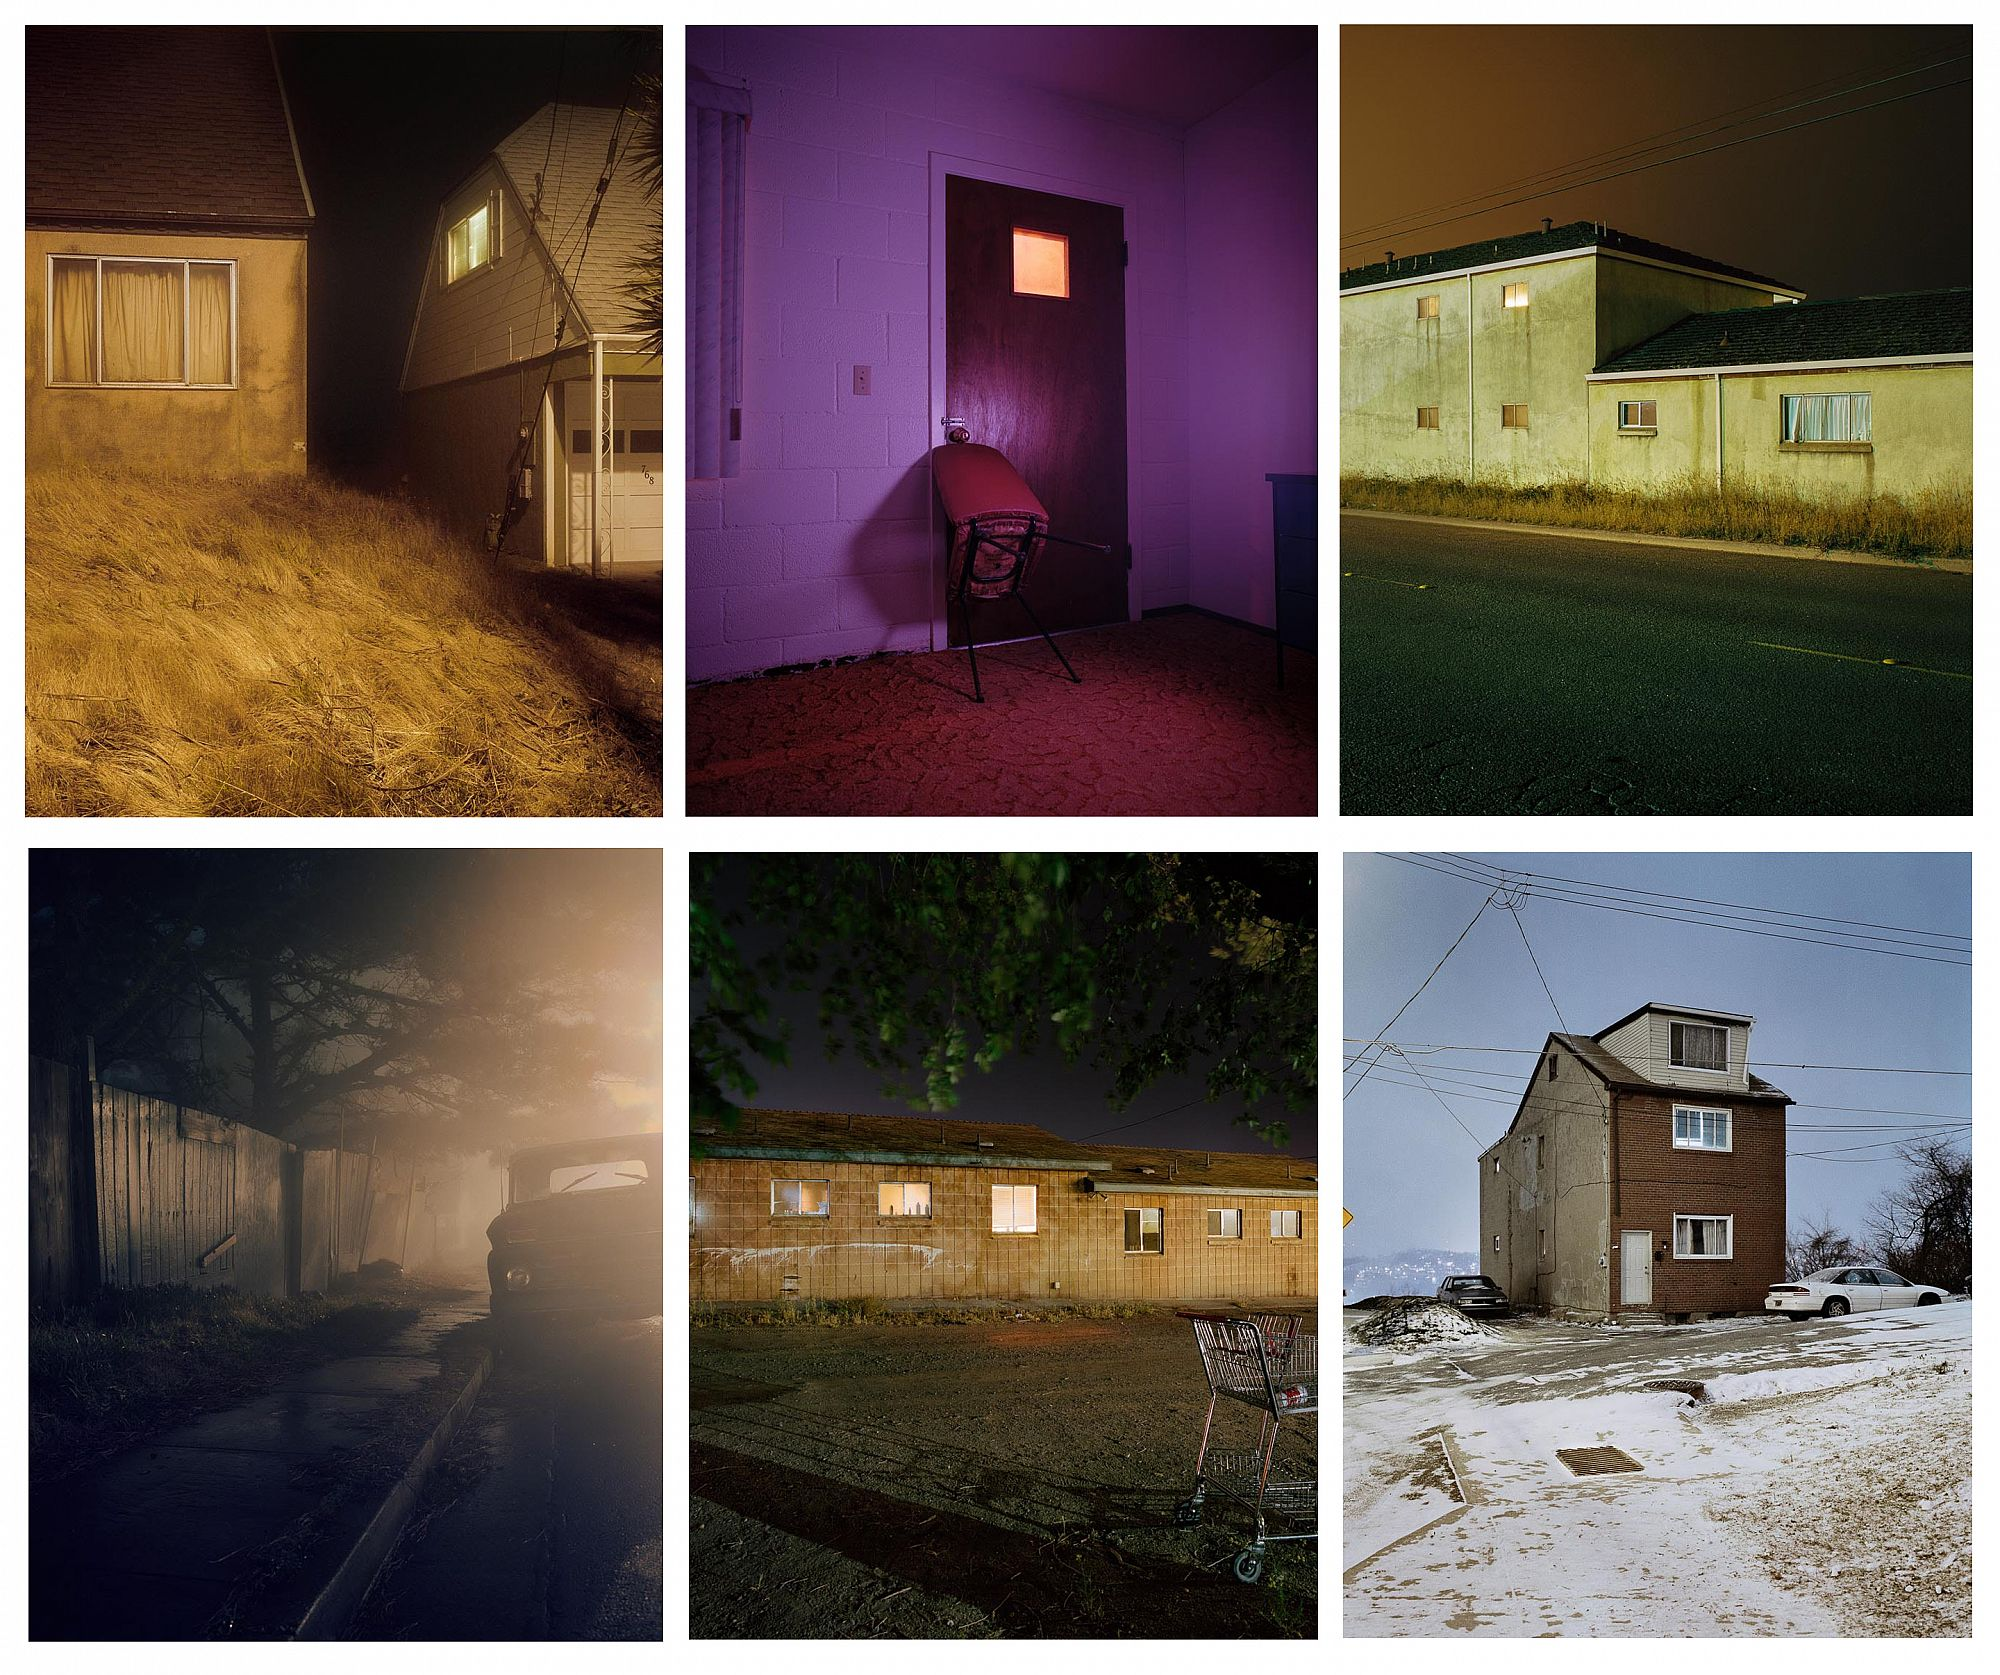 Todd Hido: House Hunting (Remastered Third Edition), Deluxe Limited Edition Suite (with 6 Archival Pigment Prints) [SIGNED]